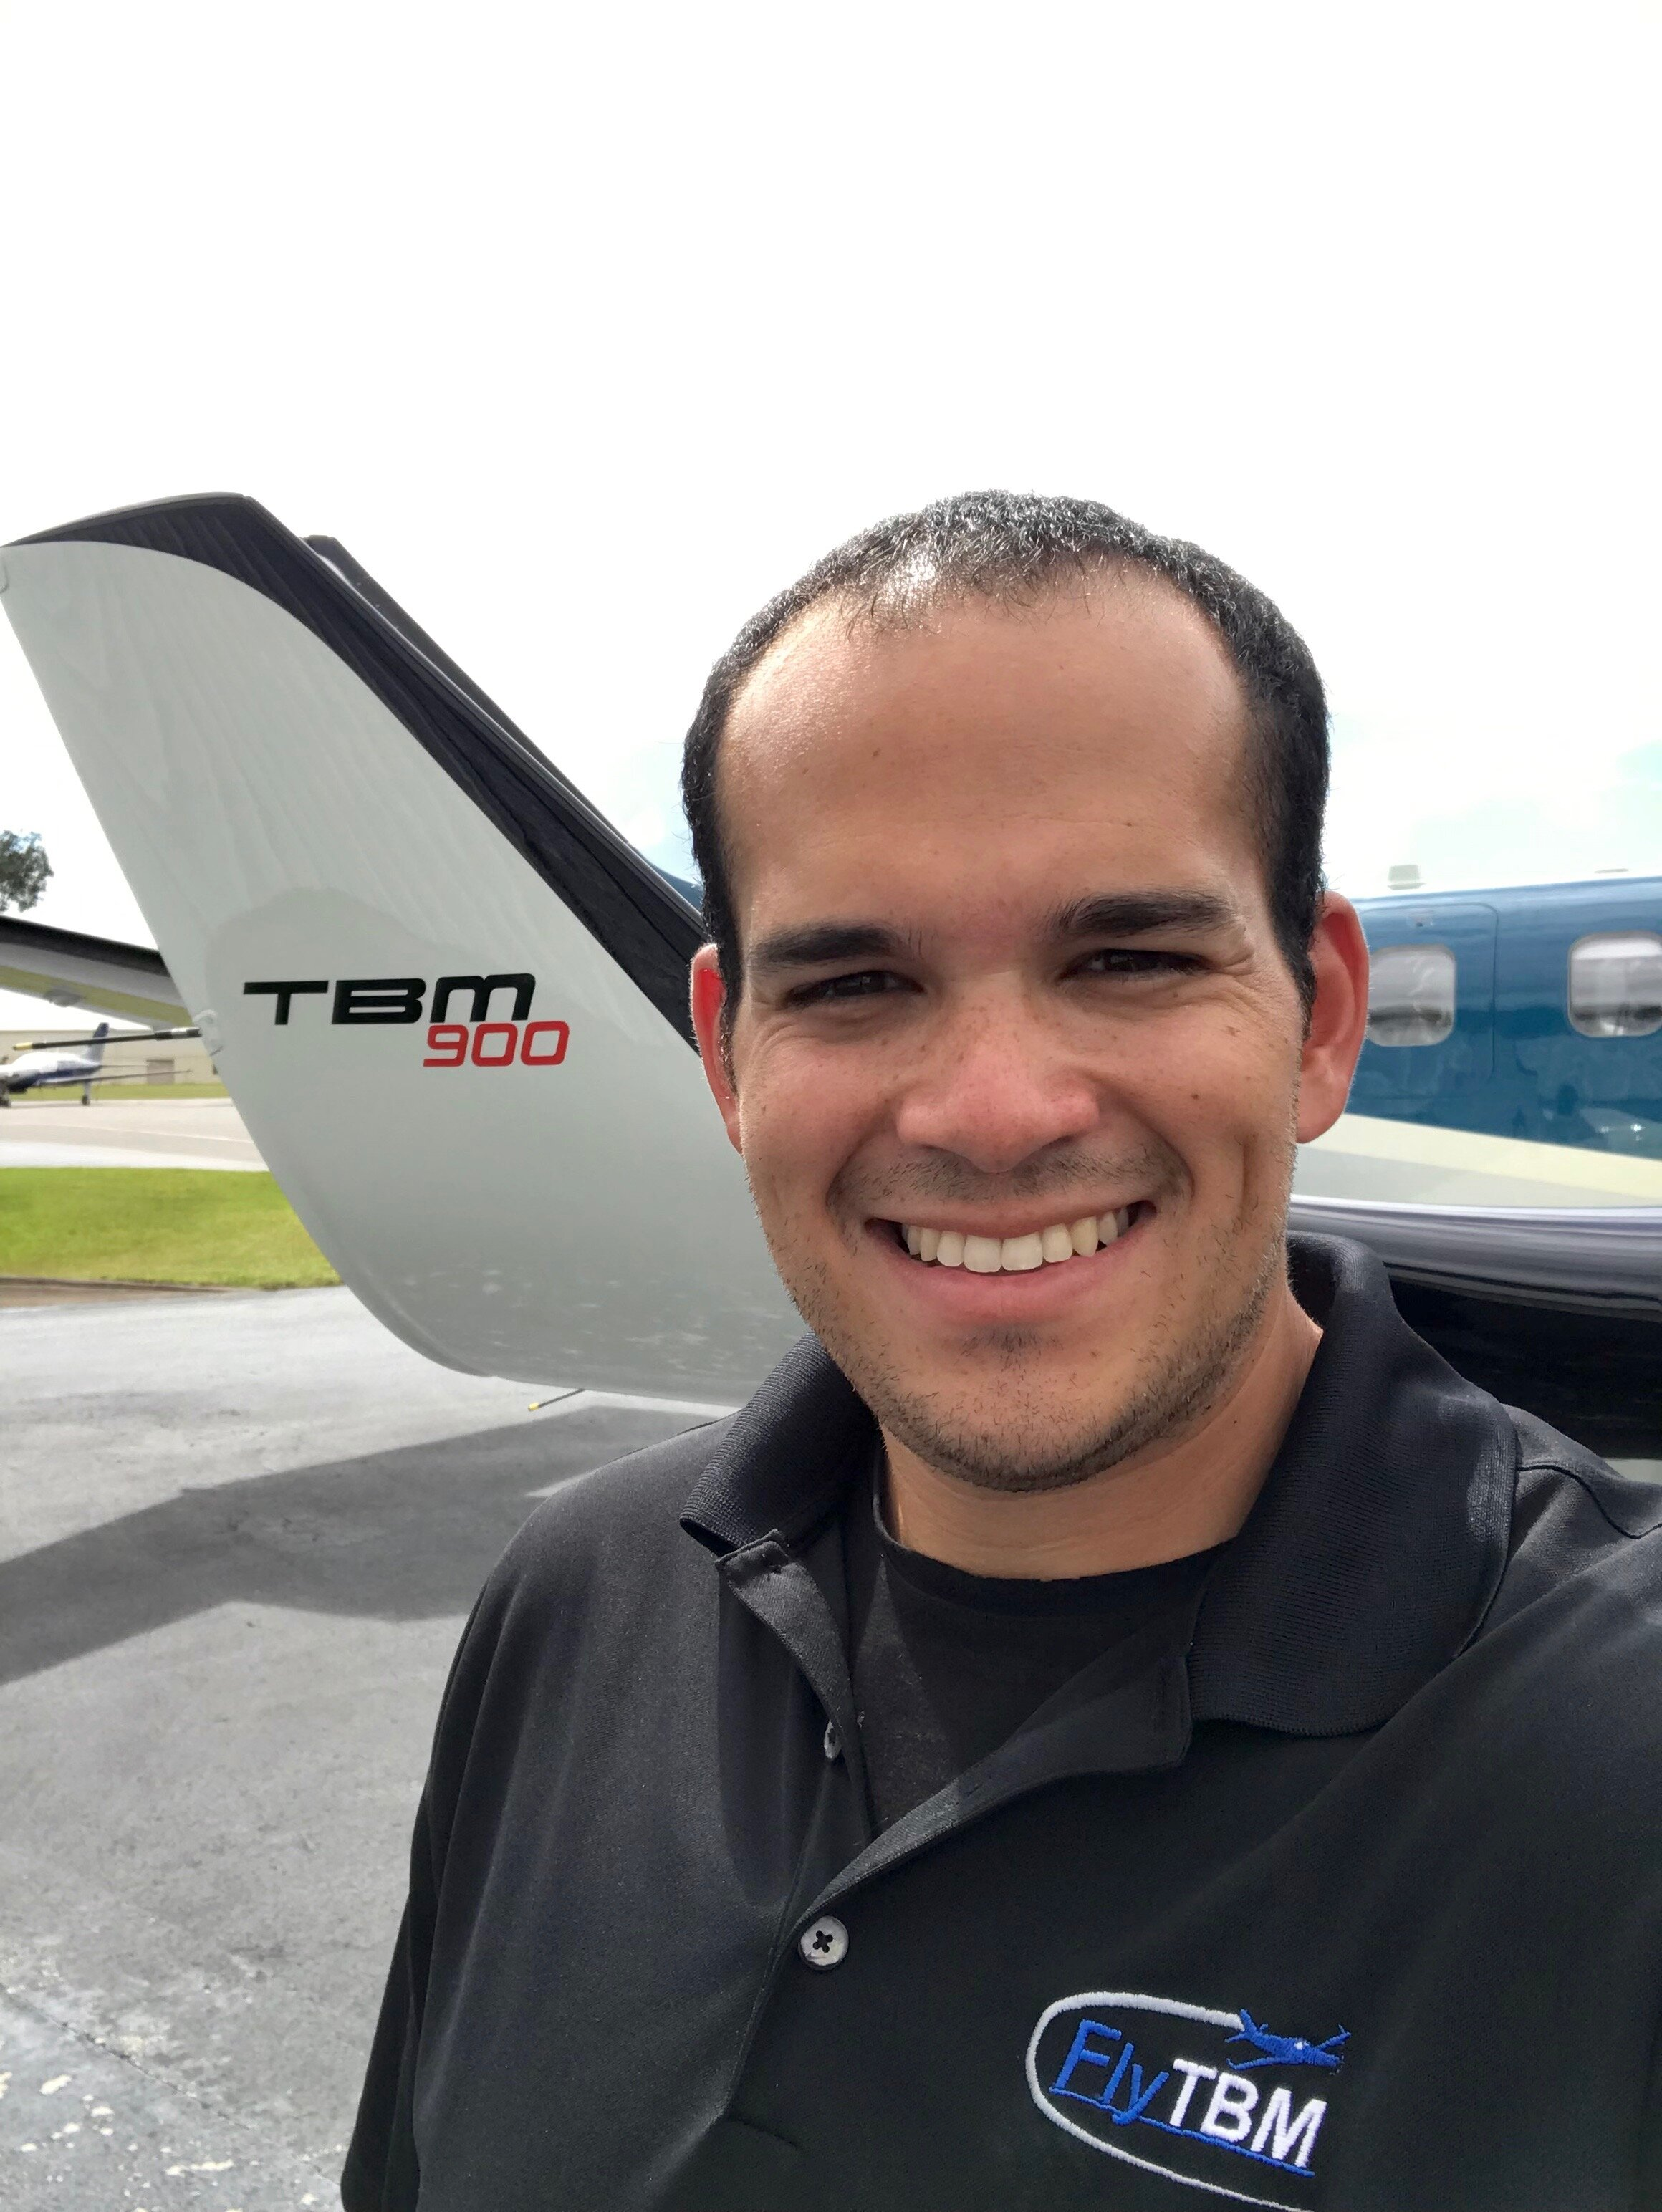 Ricardo Rivera - Ricardo Rivera is an Aircraft Analyst and Mechanic with FlyTBM and holds a Bachelor's of Science in Aviation Business Administration from Embry Riddle Aeronautical University. He holds a Private Pilot certificate while also having completed Formal Factory Maintenance Training through Daher in Pompano Beach, Florida for TBM aircraft.Ricardo's role as an Aircraft Analyst with FlyTBM has him ensuring each owners aircraft are ready to fly providing maintenance oversight, compliance tracking, assisting with research for aircraft acquisitions, and assisting TBM owners with technical questions about their aircraft.Ricardo has worked as a technician with a Daher Authorized Service Center, providing him with unique practical knowledge and experience working on all TBM models. Ricardo's role as a TBM technician has him providing technical support to owners/pilots, coordinating maintenance with service centers, providing assistance with AOG events, assisting with post-maintenance test flights, and keeping aircraft clean and looking their best.